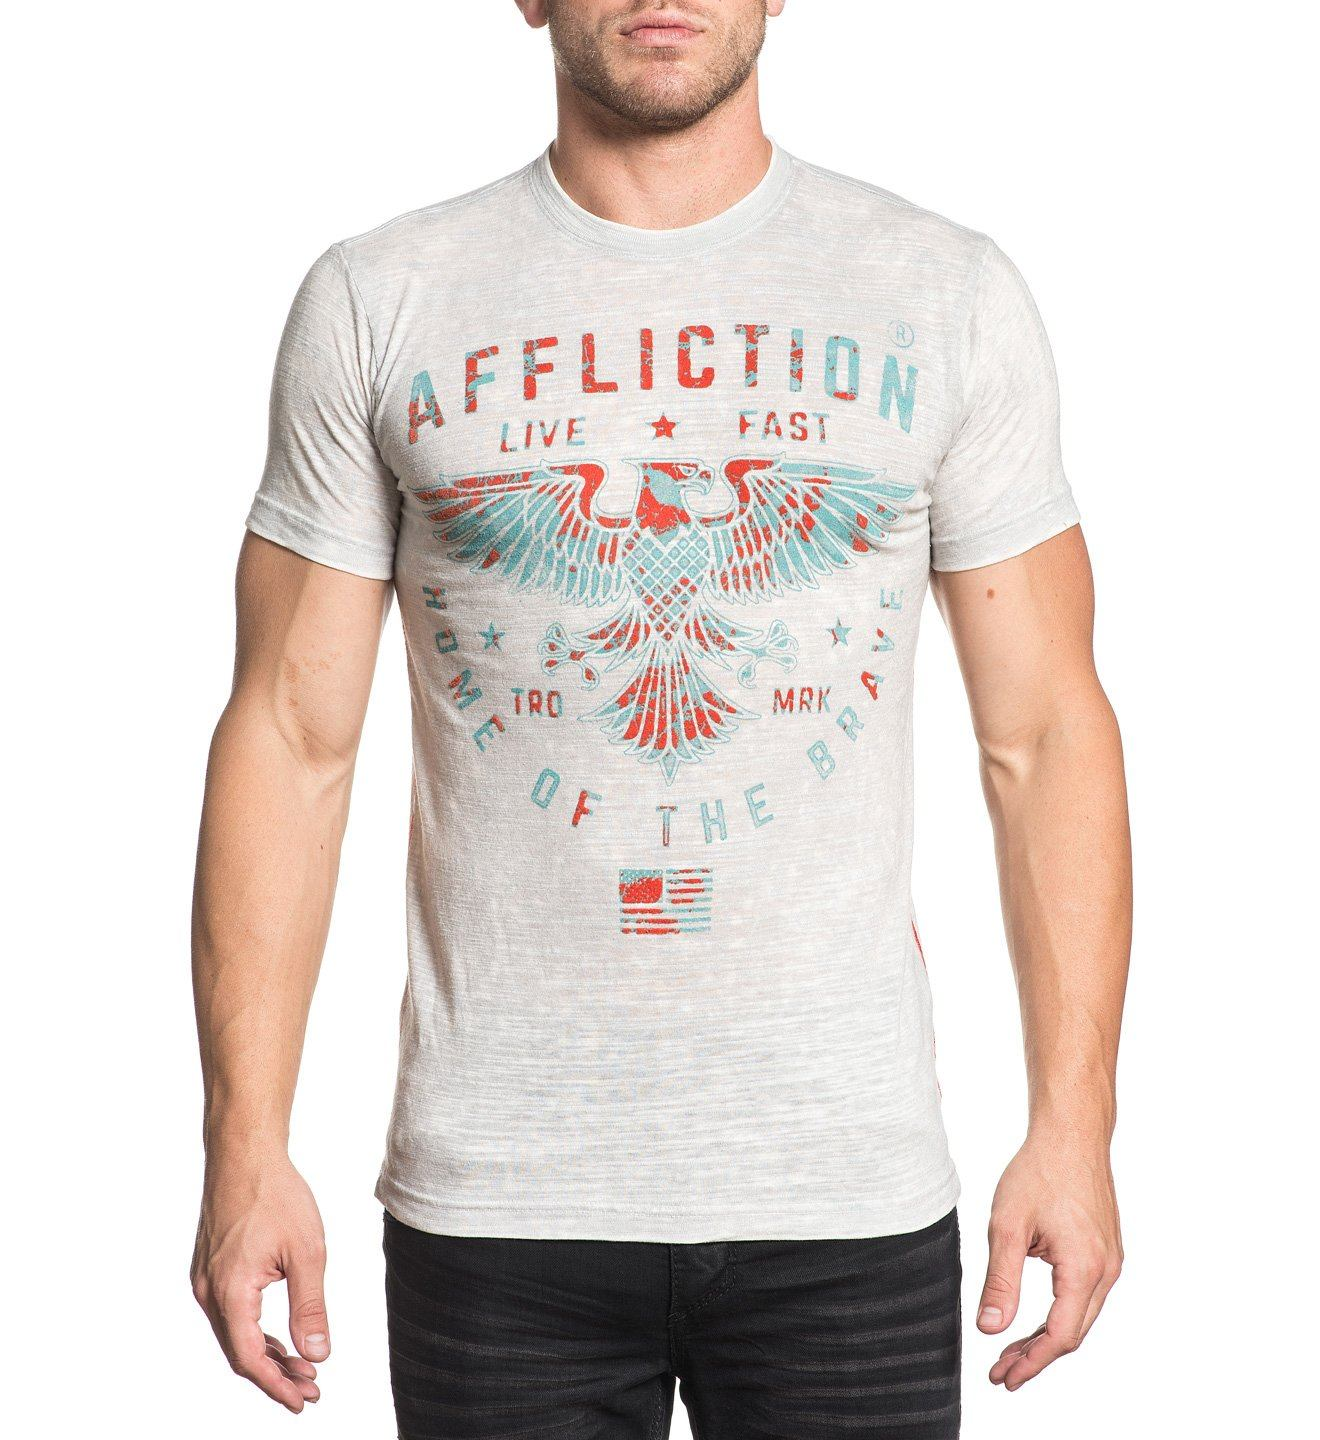 Mens Short Sleeve Tees - Standard Athletics